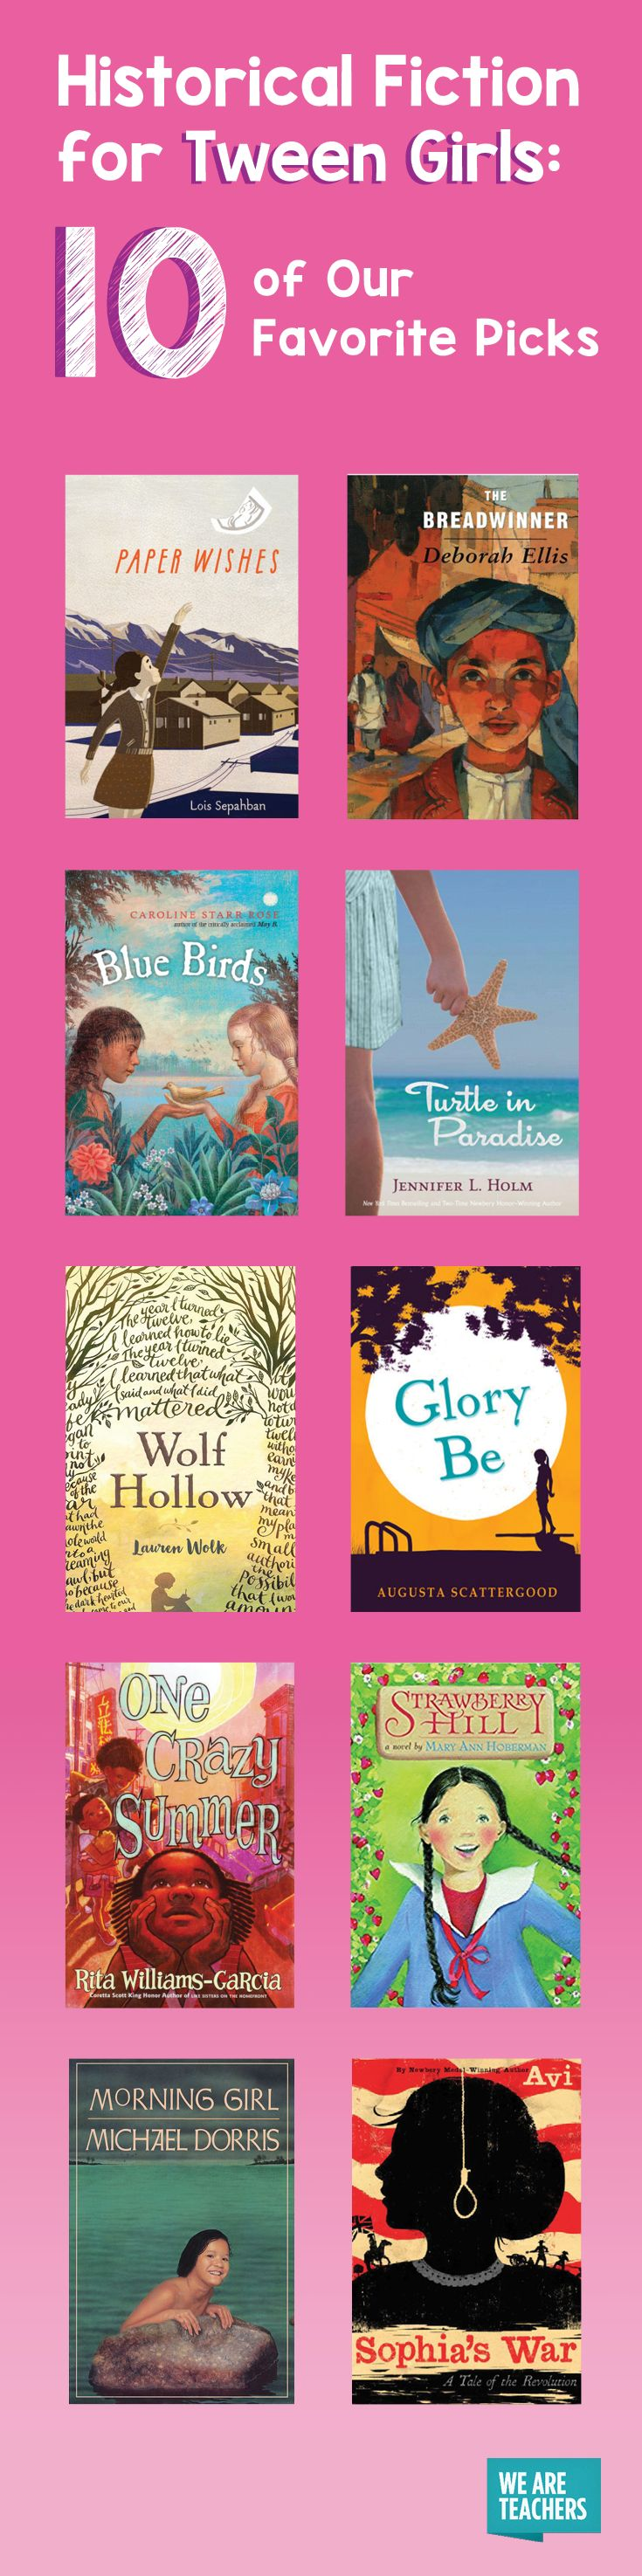 Historical Fiction for Tween Girls: Our 10 Favorite Picks - WeAreTeachers